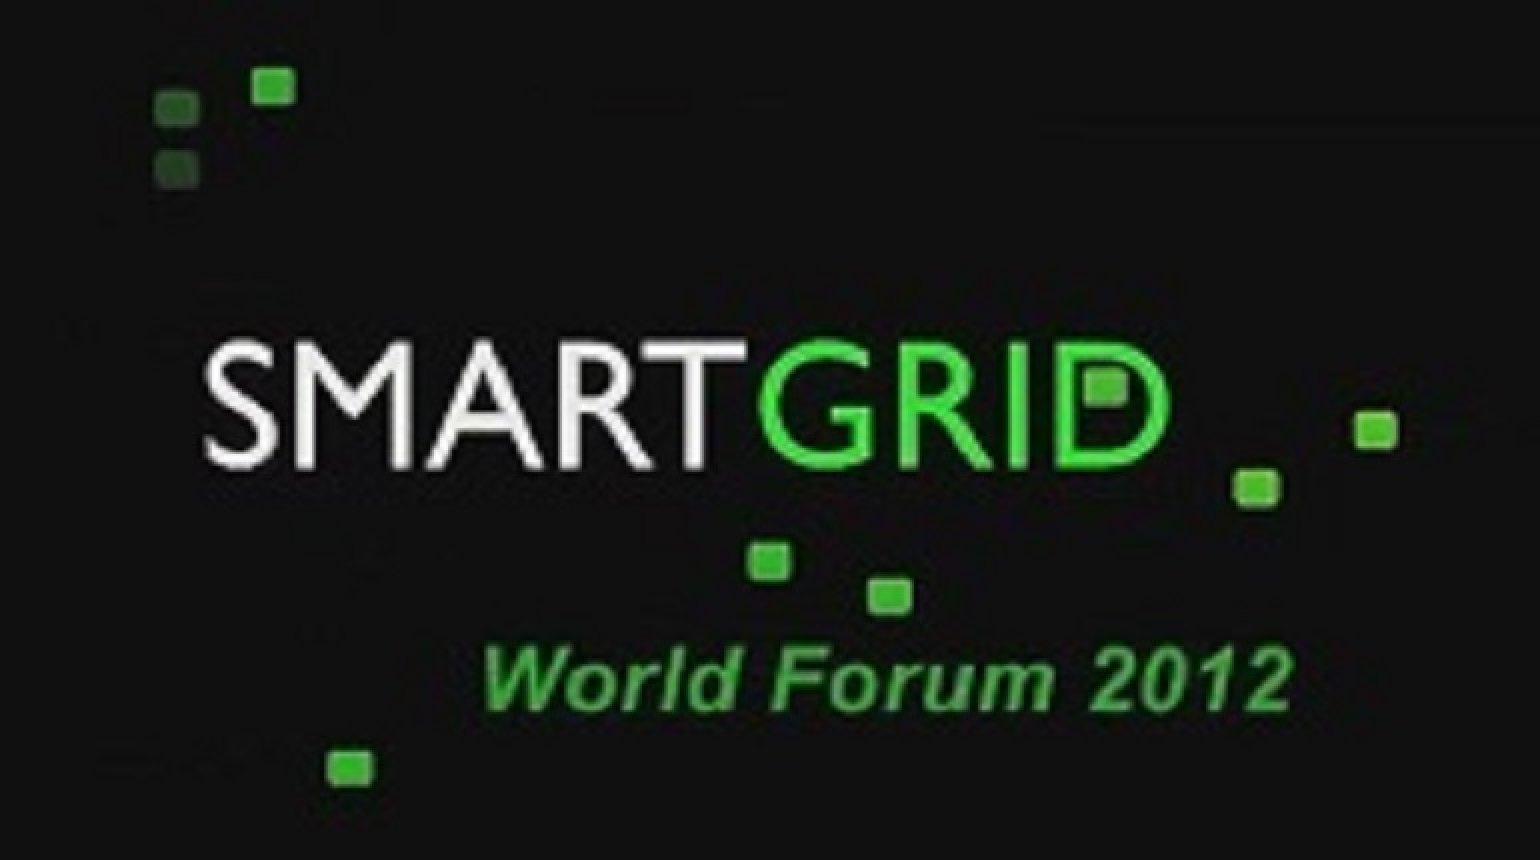 IEEE Smart Grid World Forum - Session 6 Panel Discussion